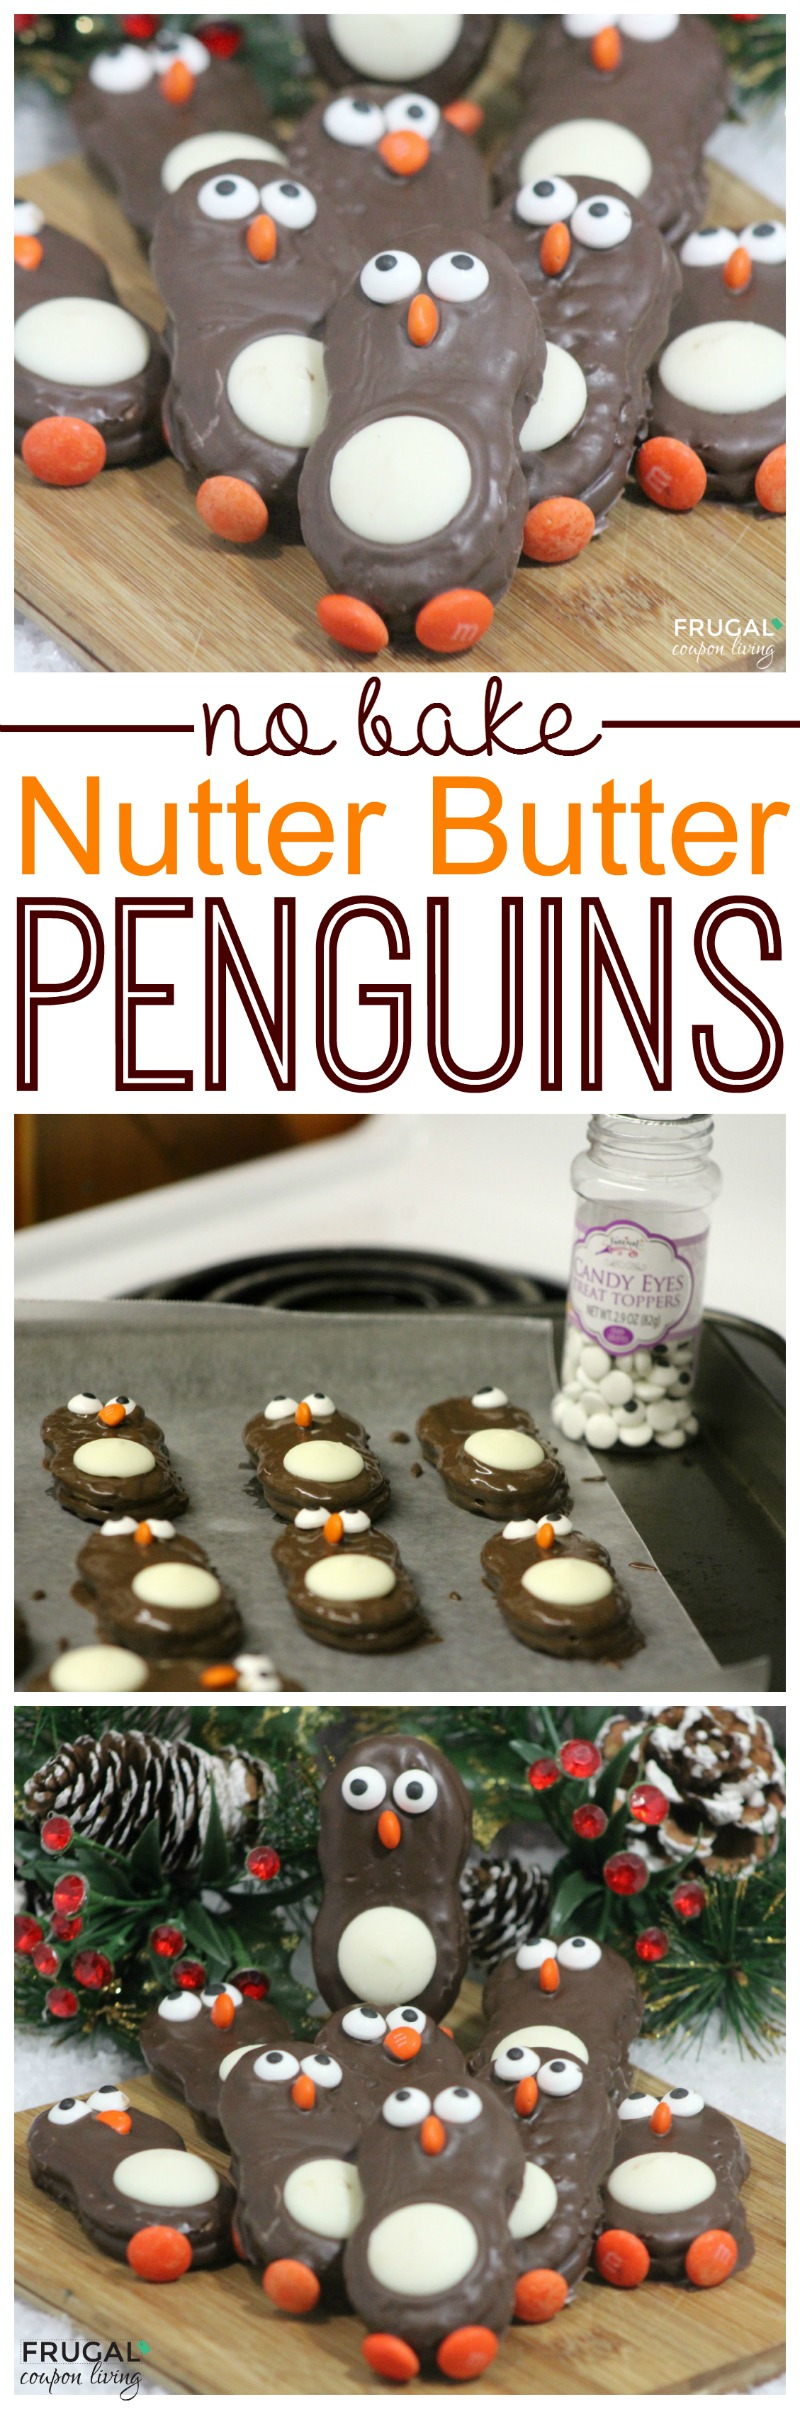 Nutter Butter Penguins Collage on Frugal Coupon Living